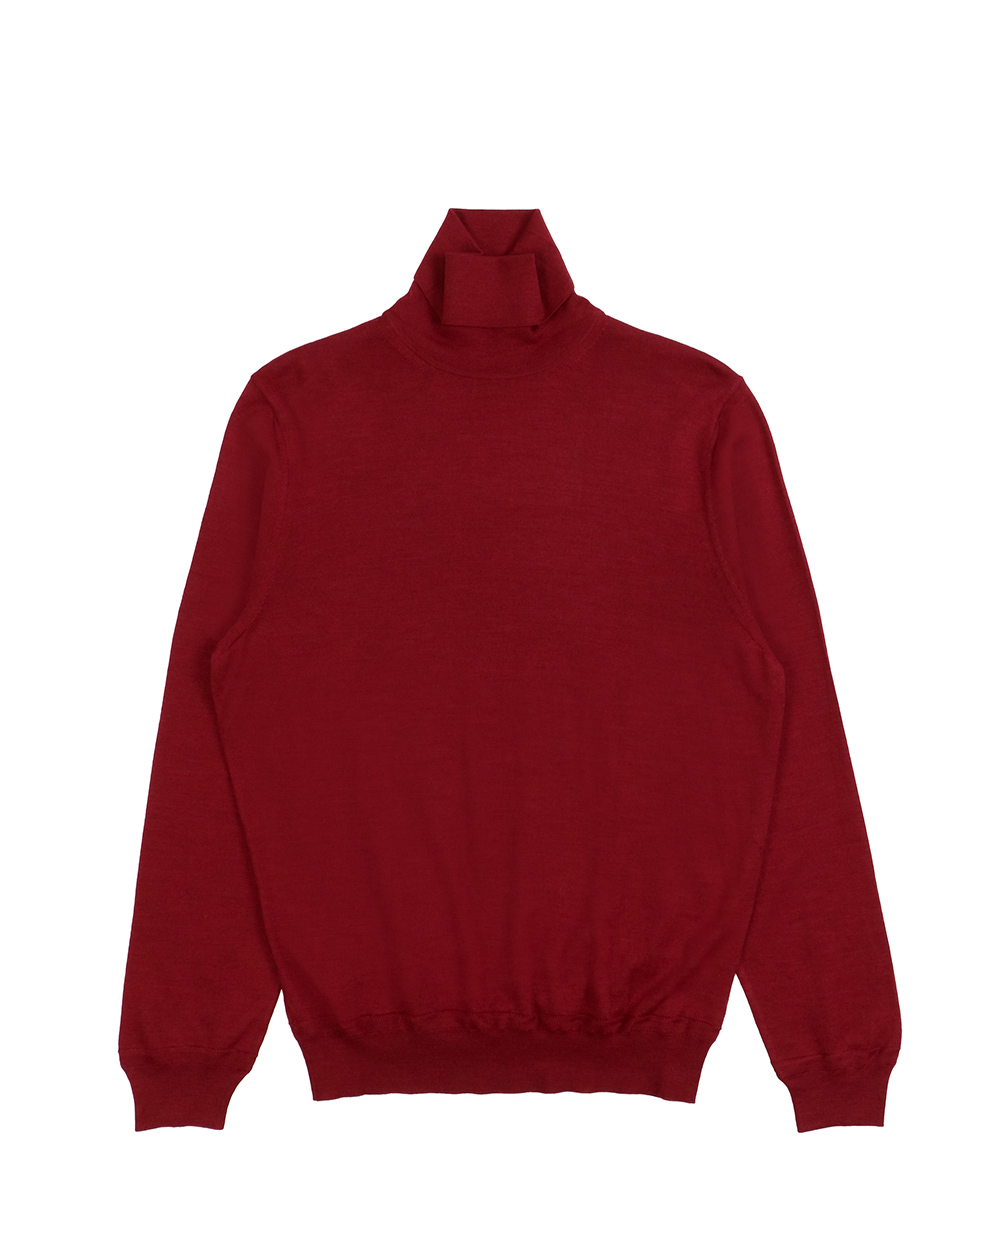 Cotton Bottle Neck Sweater